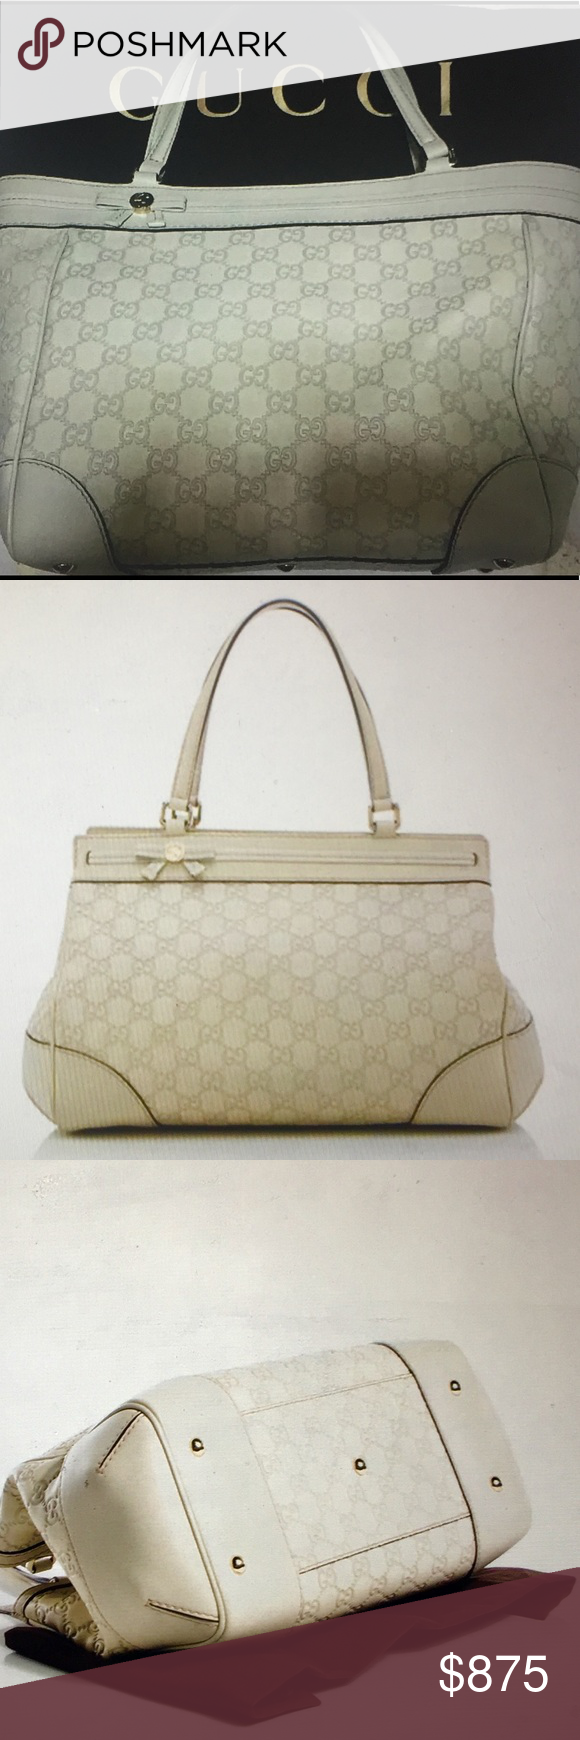 776e37b46a21 Gucci GG Guccissima Mayfair Tote Bag 👜 Authentic Gucci Tote Bag, GG  Monogrammed ivory